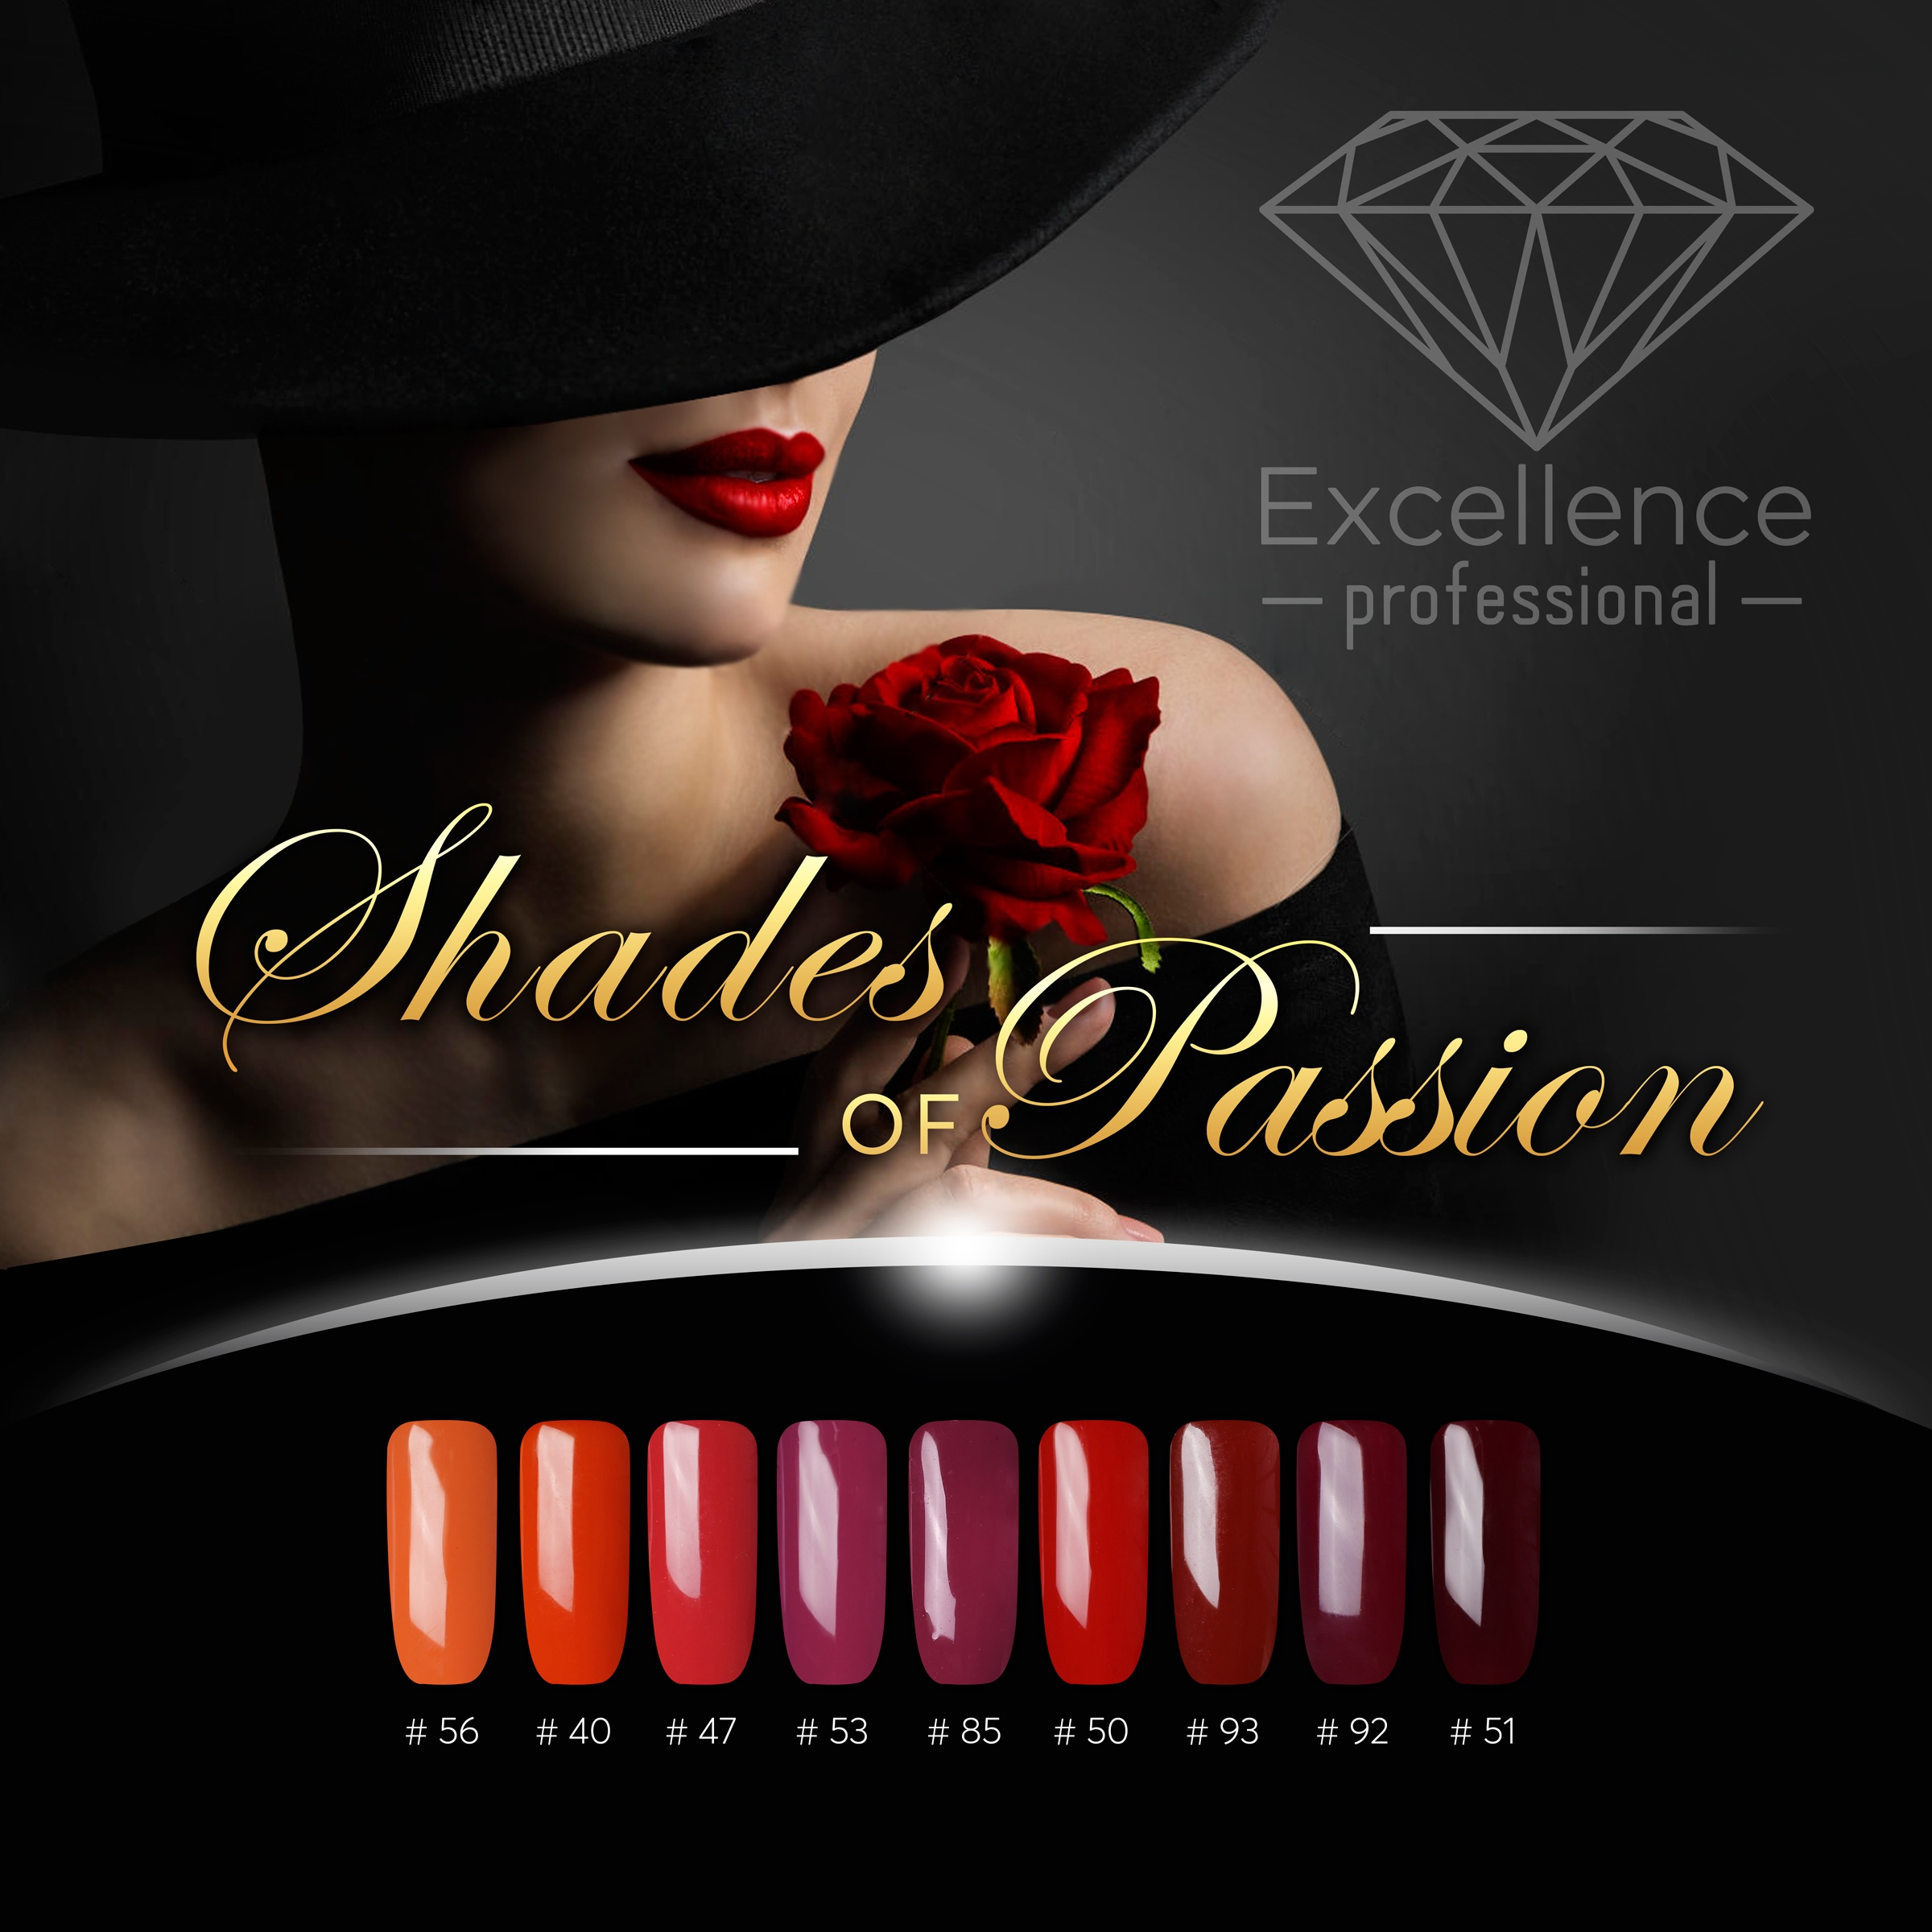 Shades-of-Passion_2